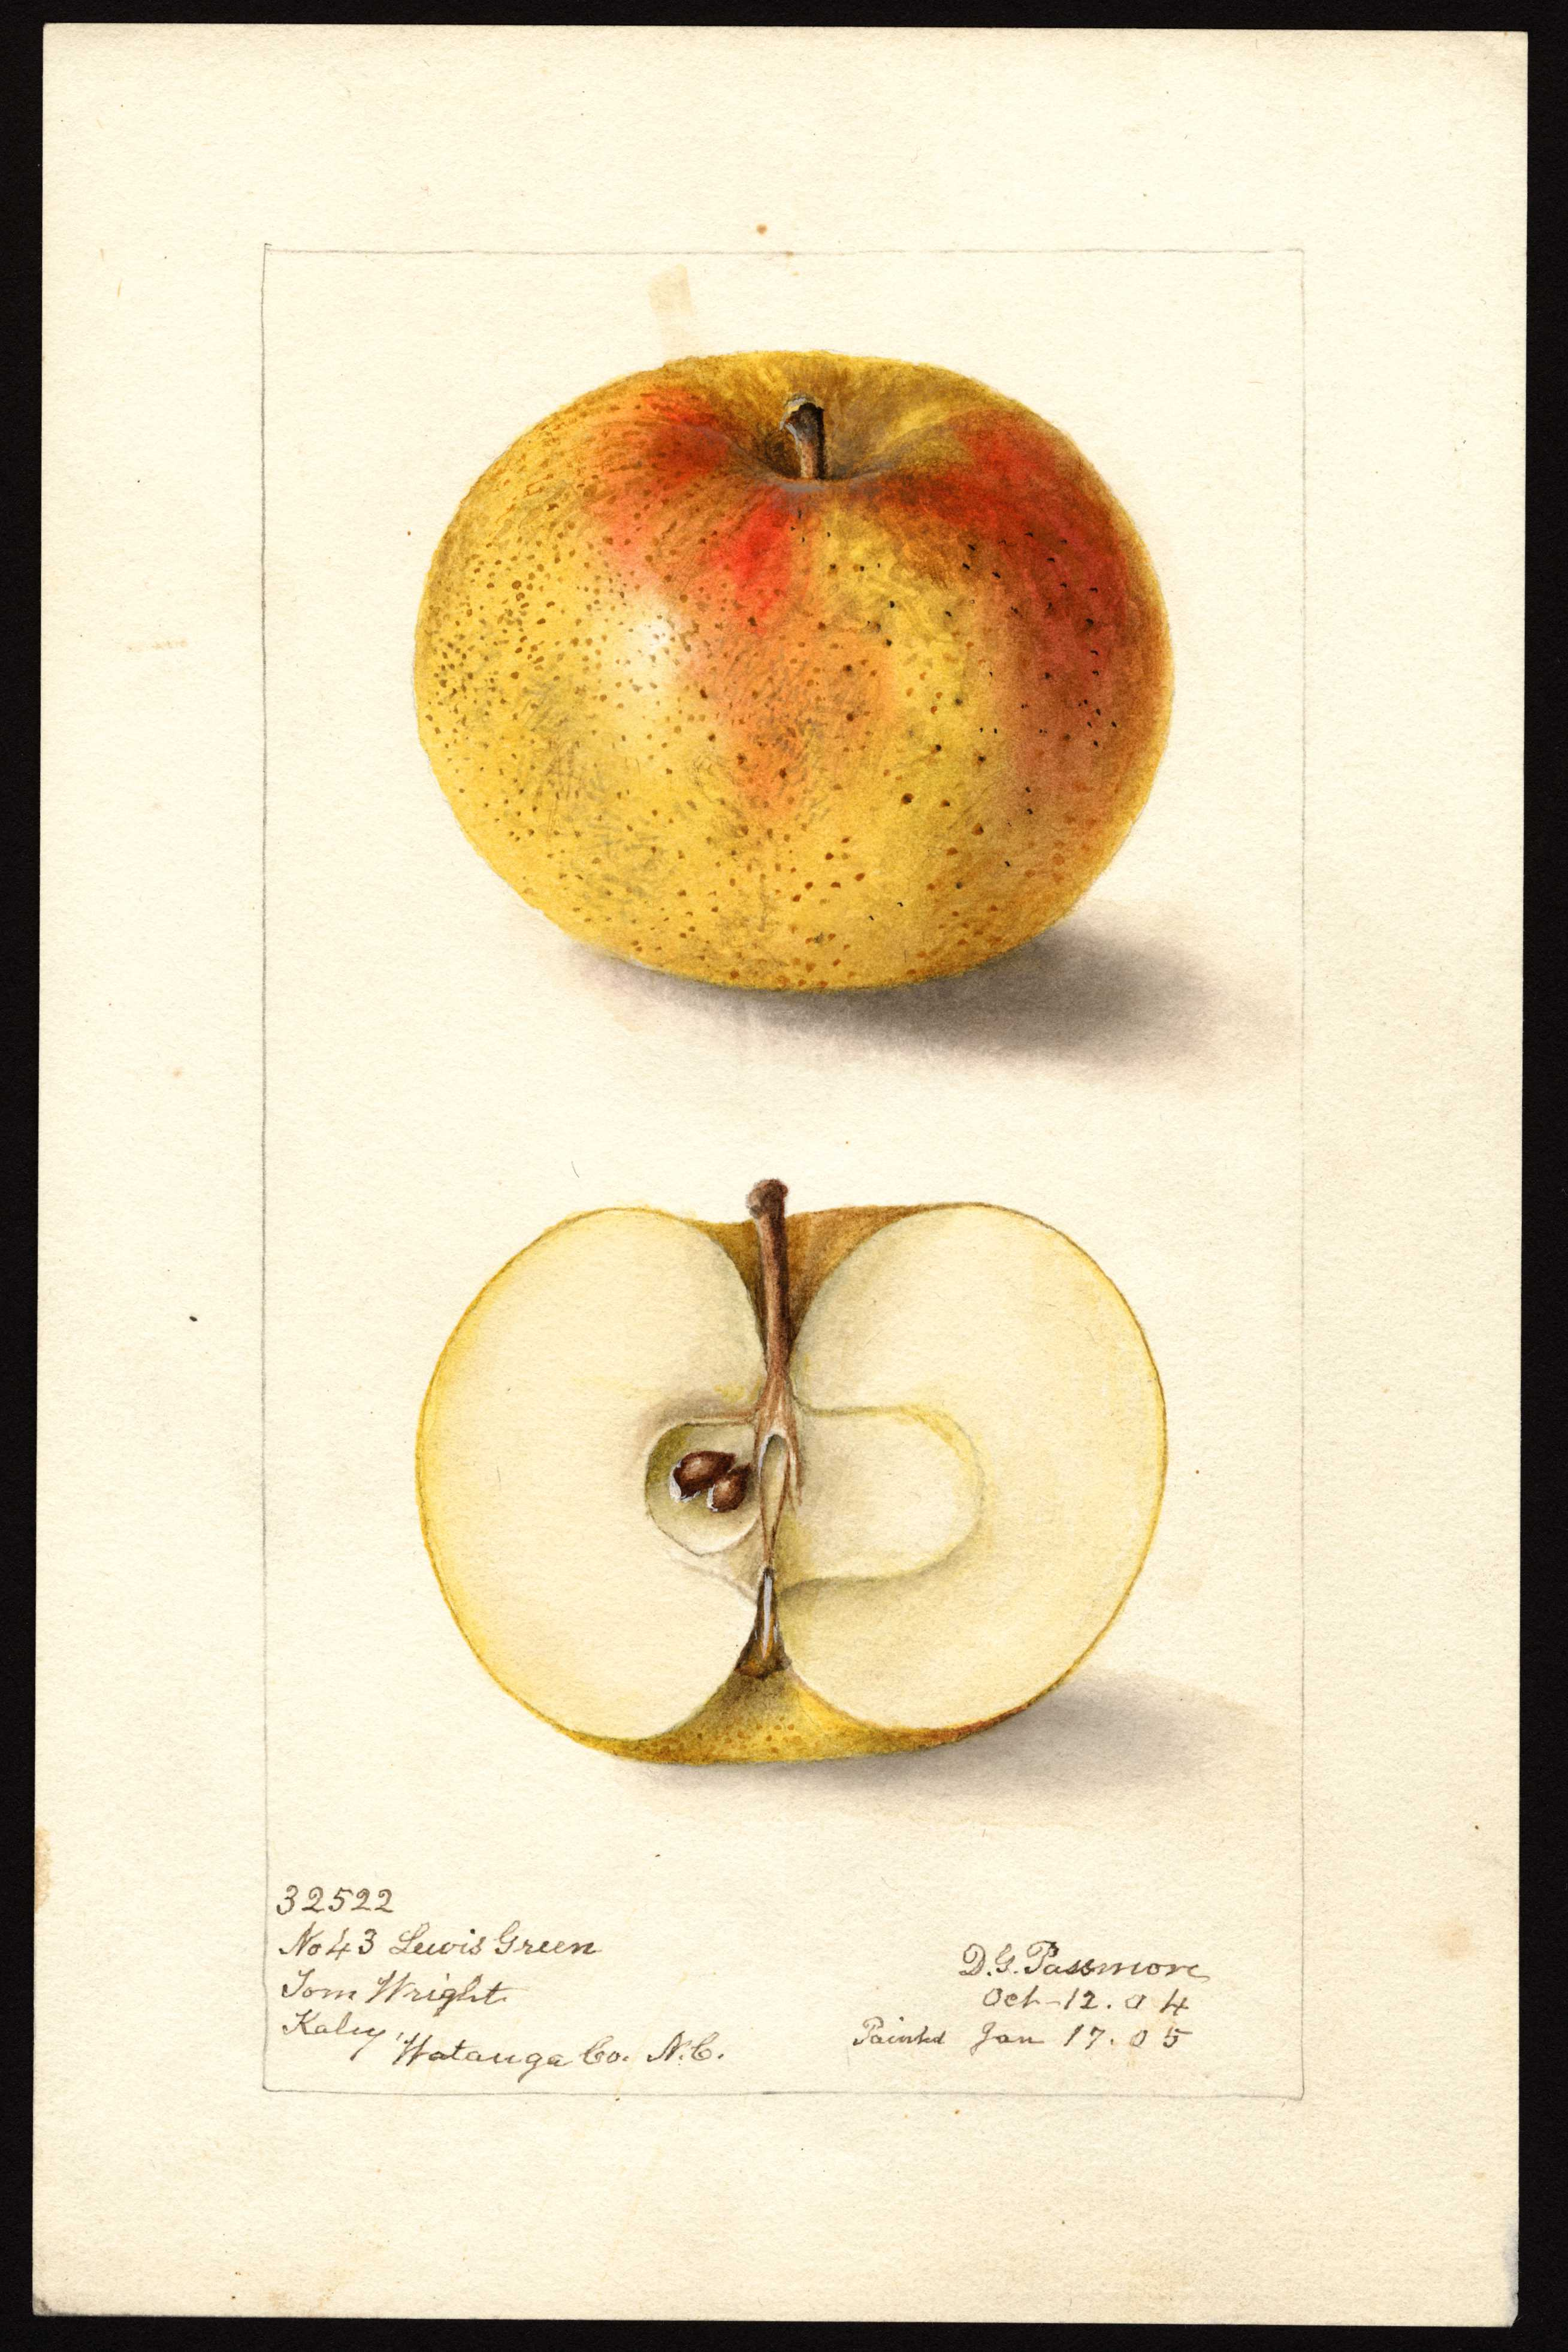 yellow apple with red blush and small brown spots